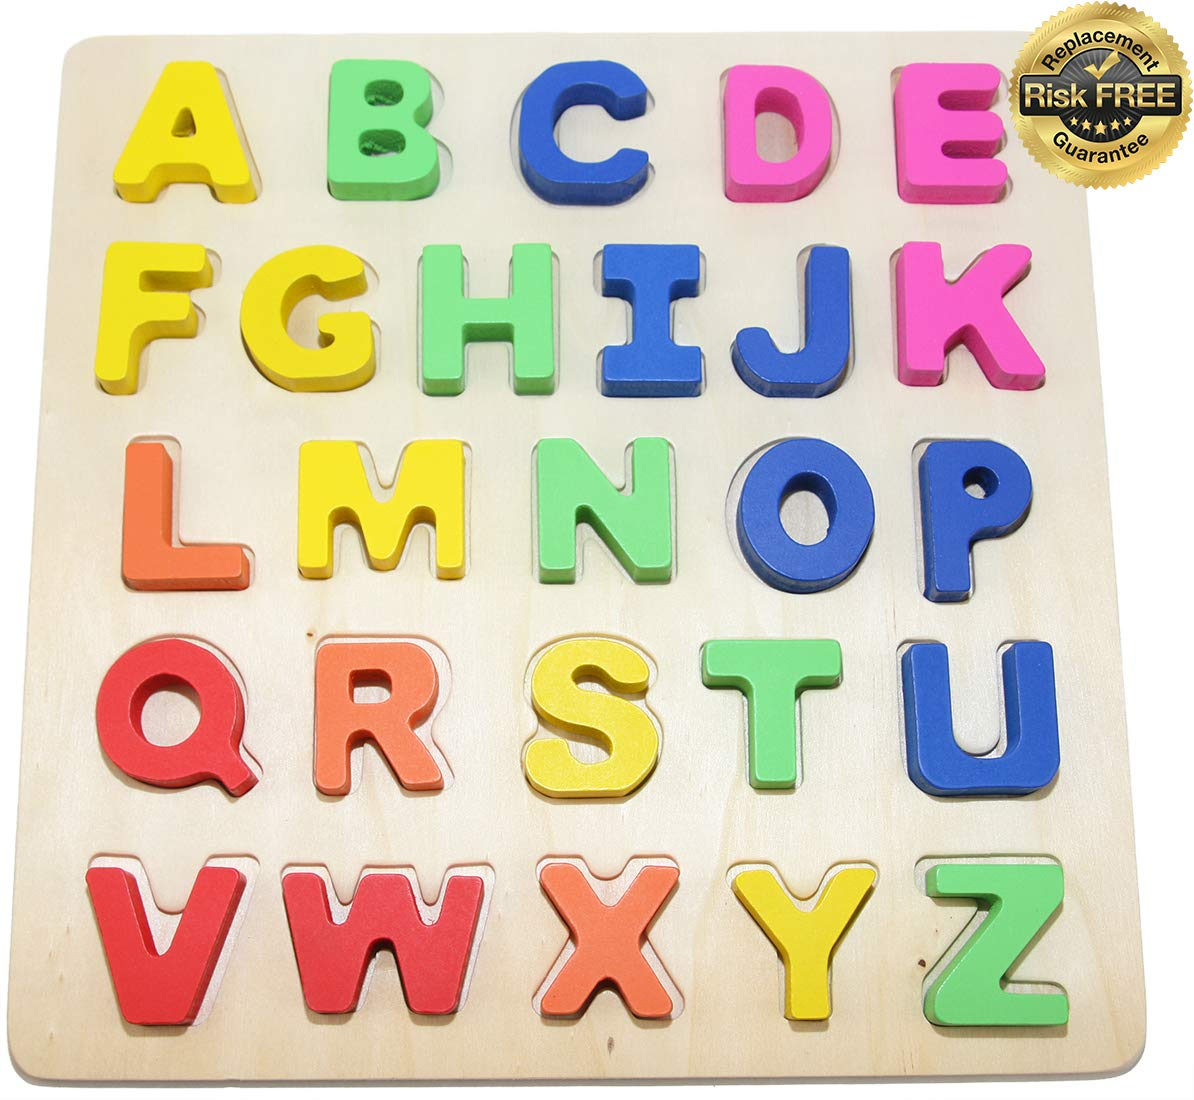 Wooden Alphabet Toddler Puzzles Toys For 2 To 3 Year Olds Kids With Big Bright Color Letters